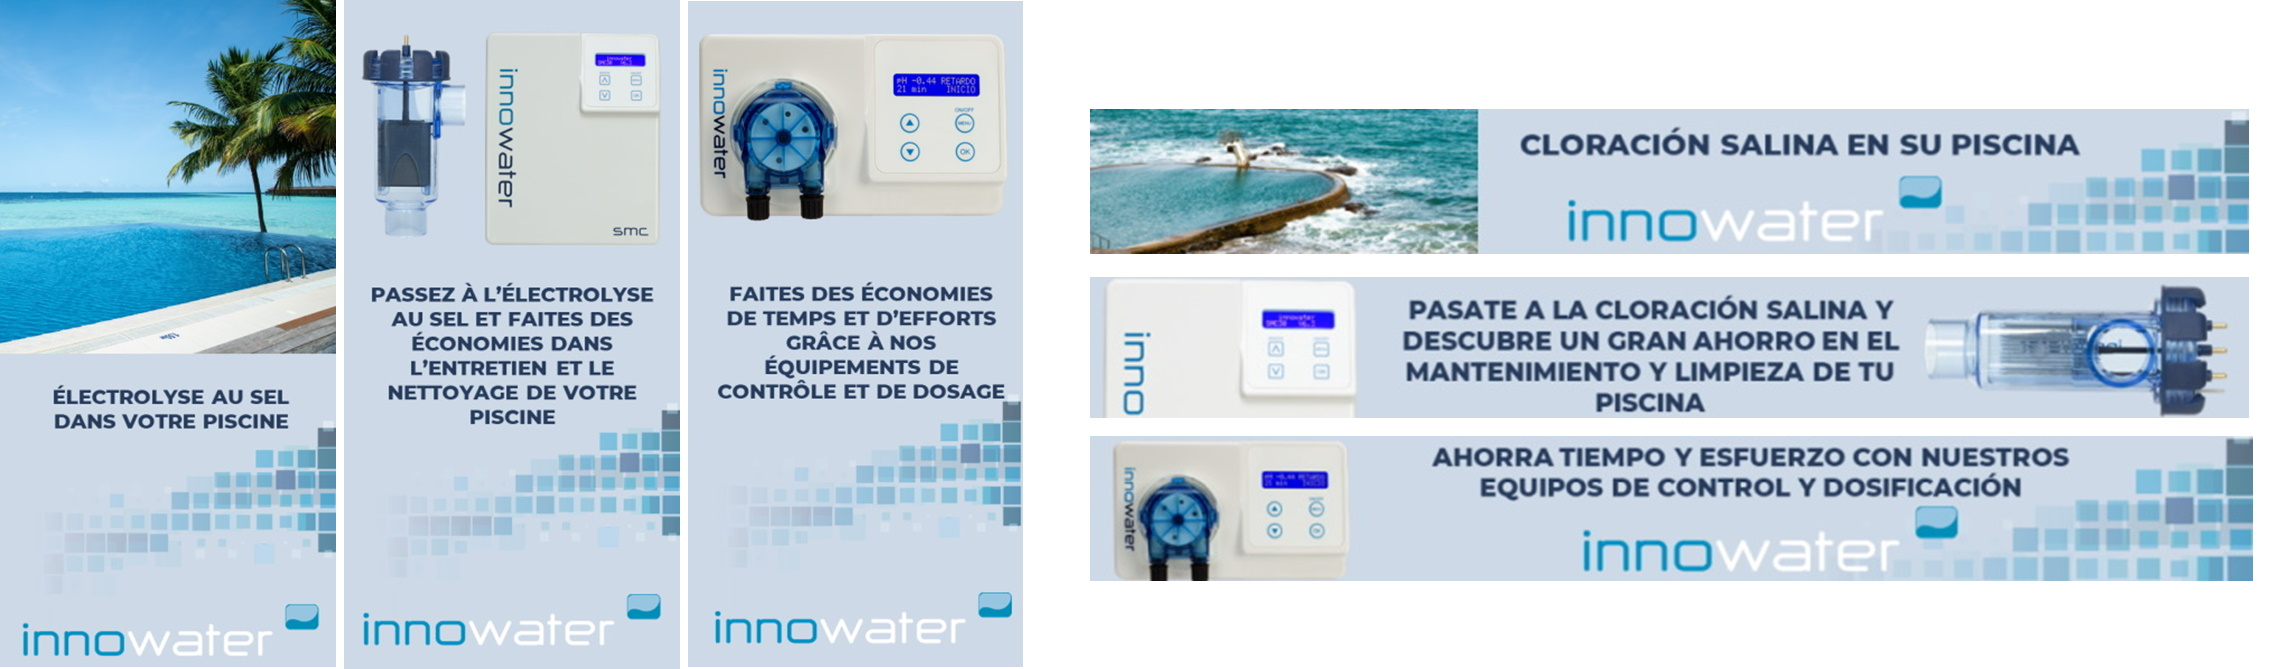 BANNERS INNOWATER